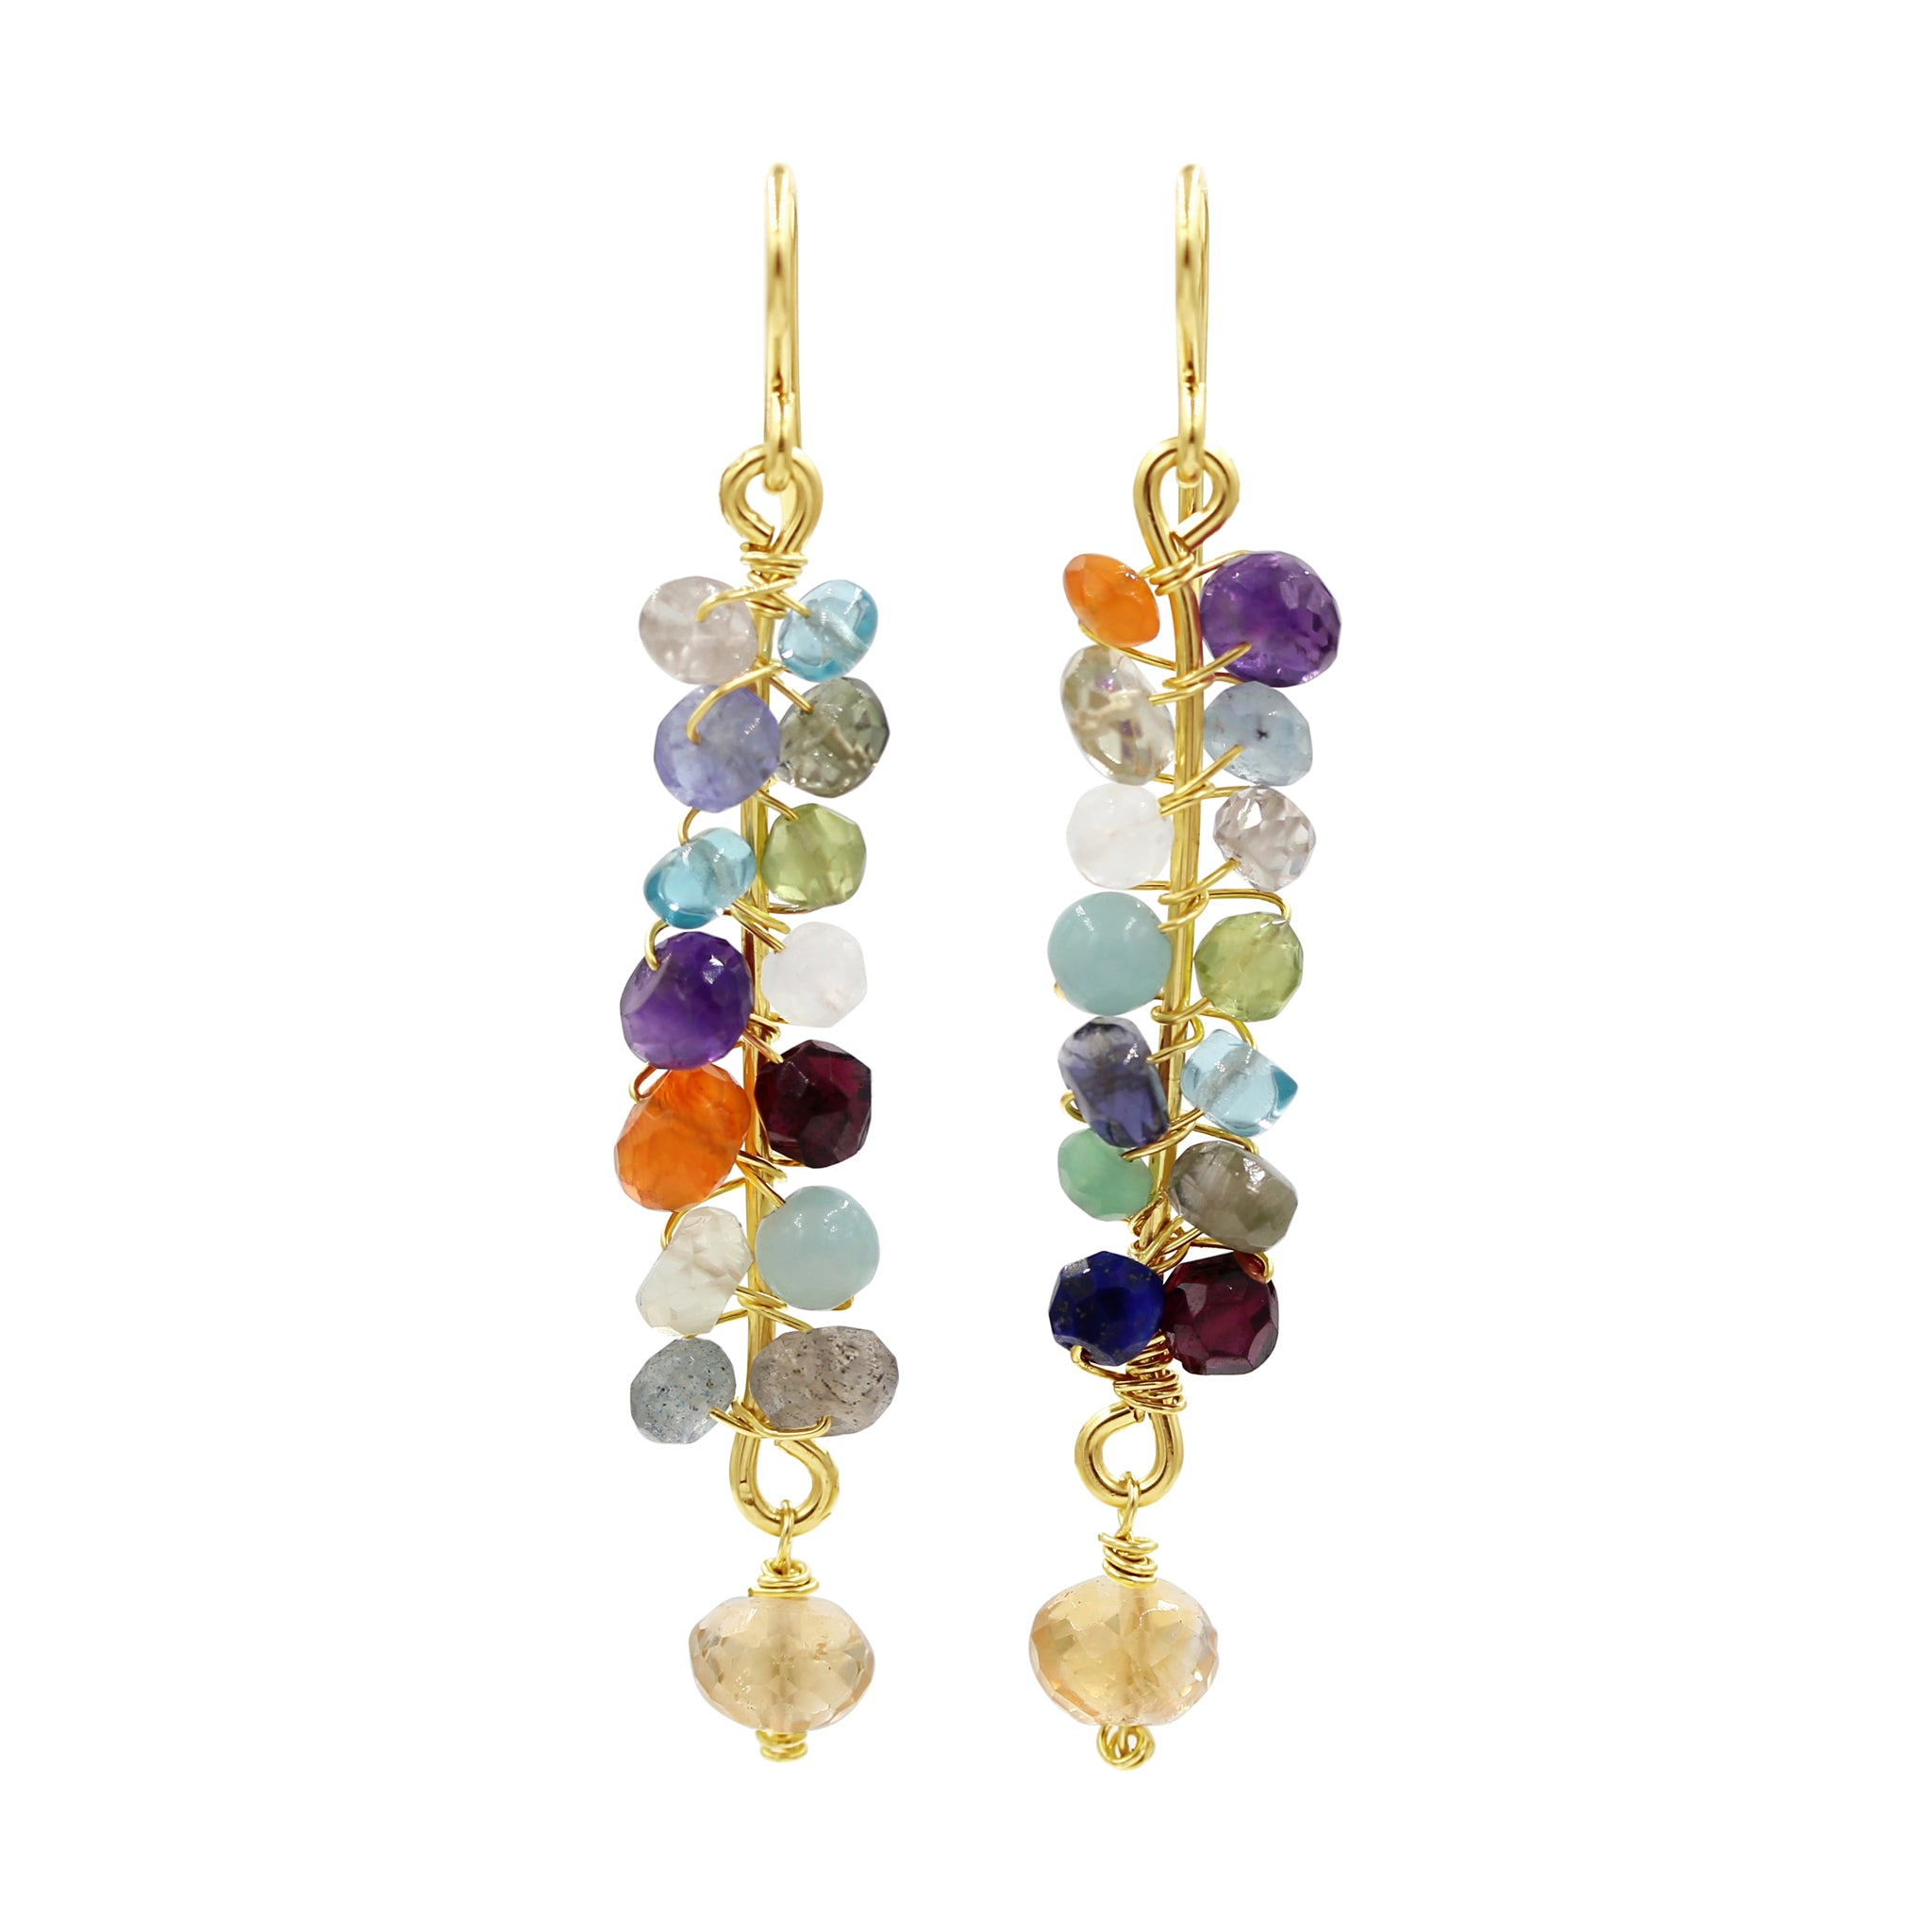 Fabulous Colorful Gemstone Earrings - Sati Gems Hawaii Healing Crystal Gemstone Jewelry